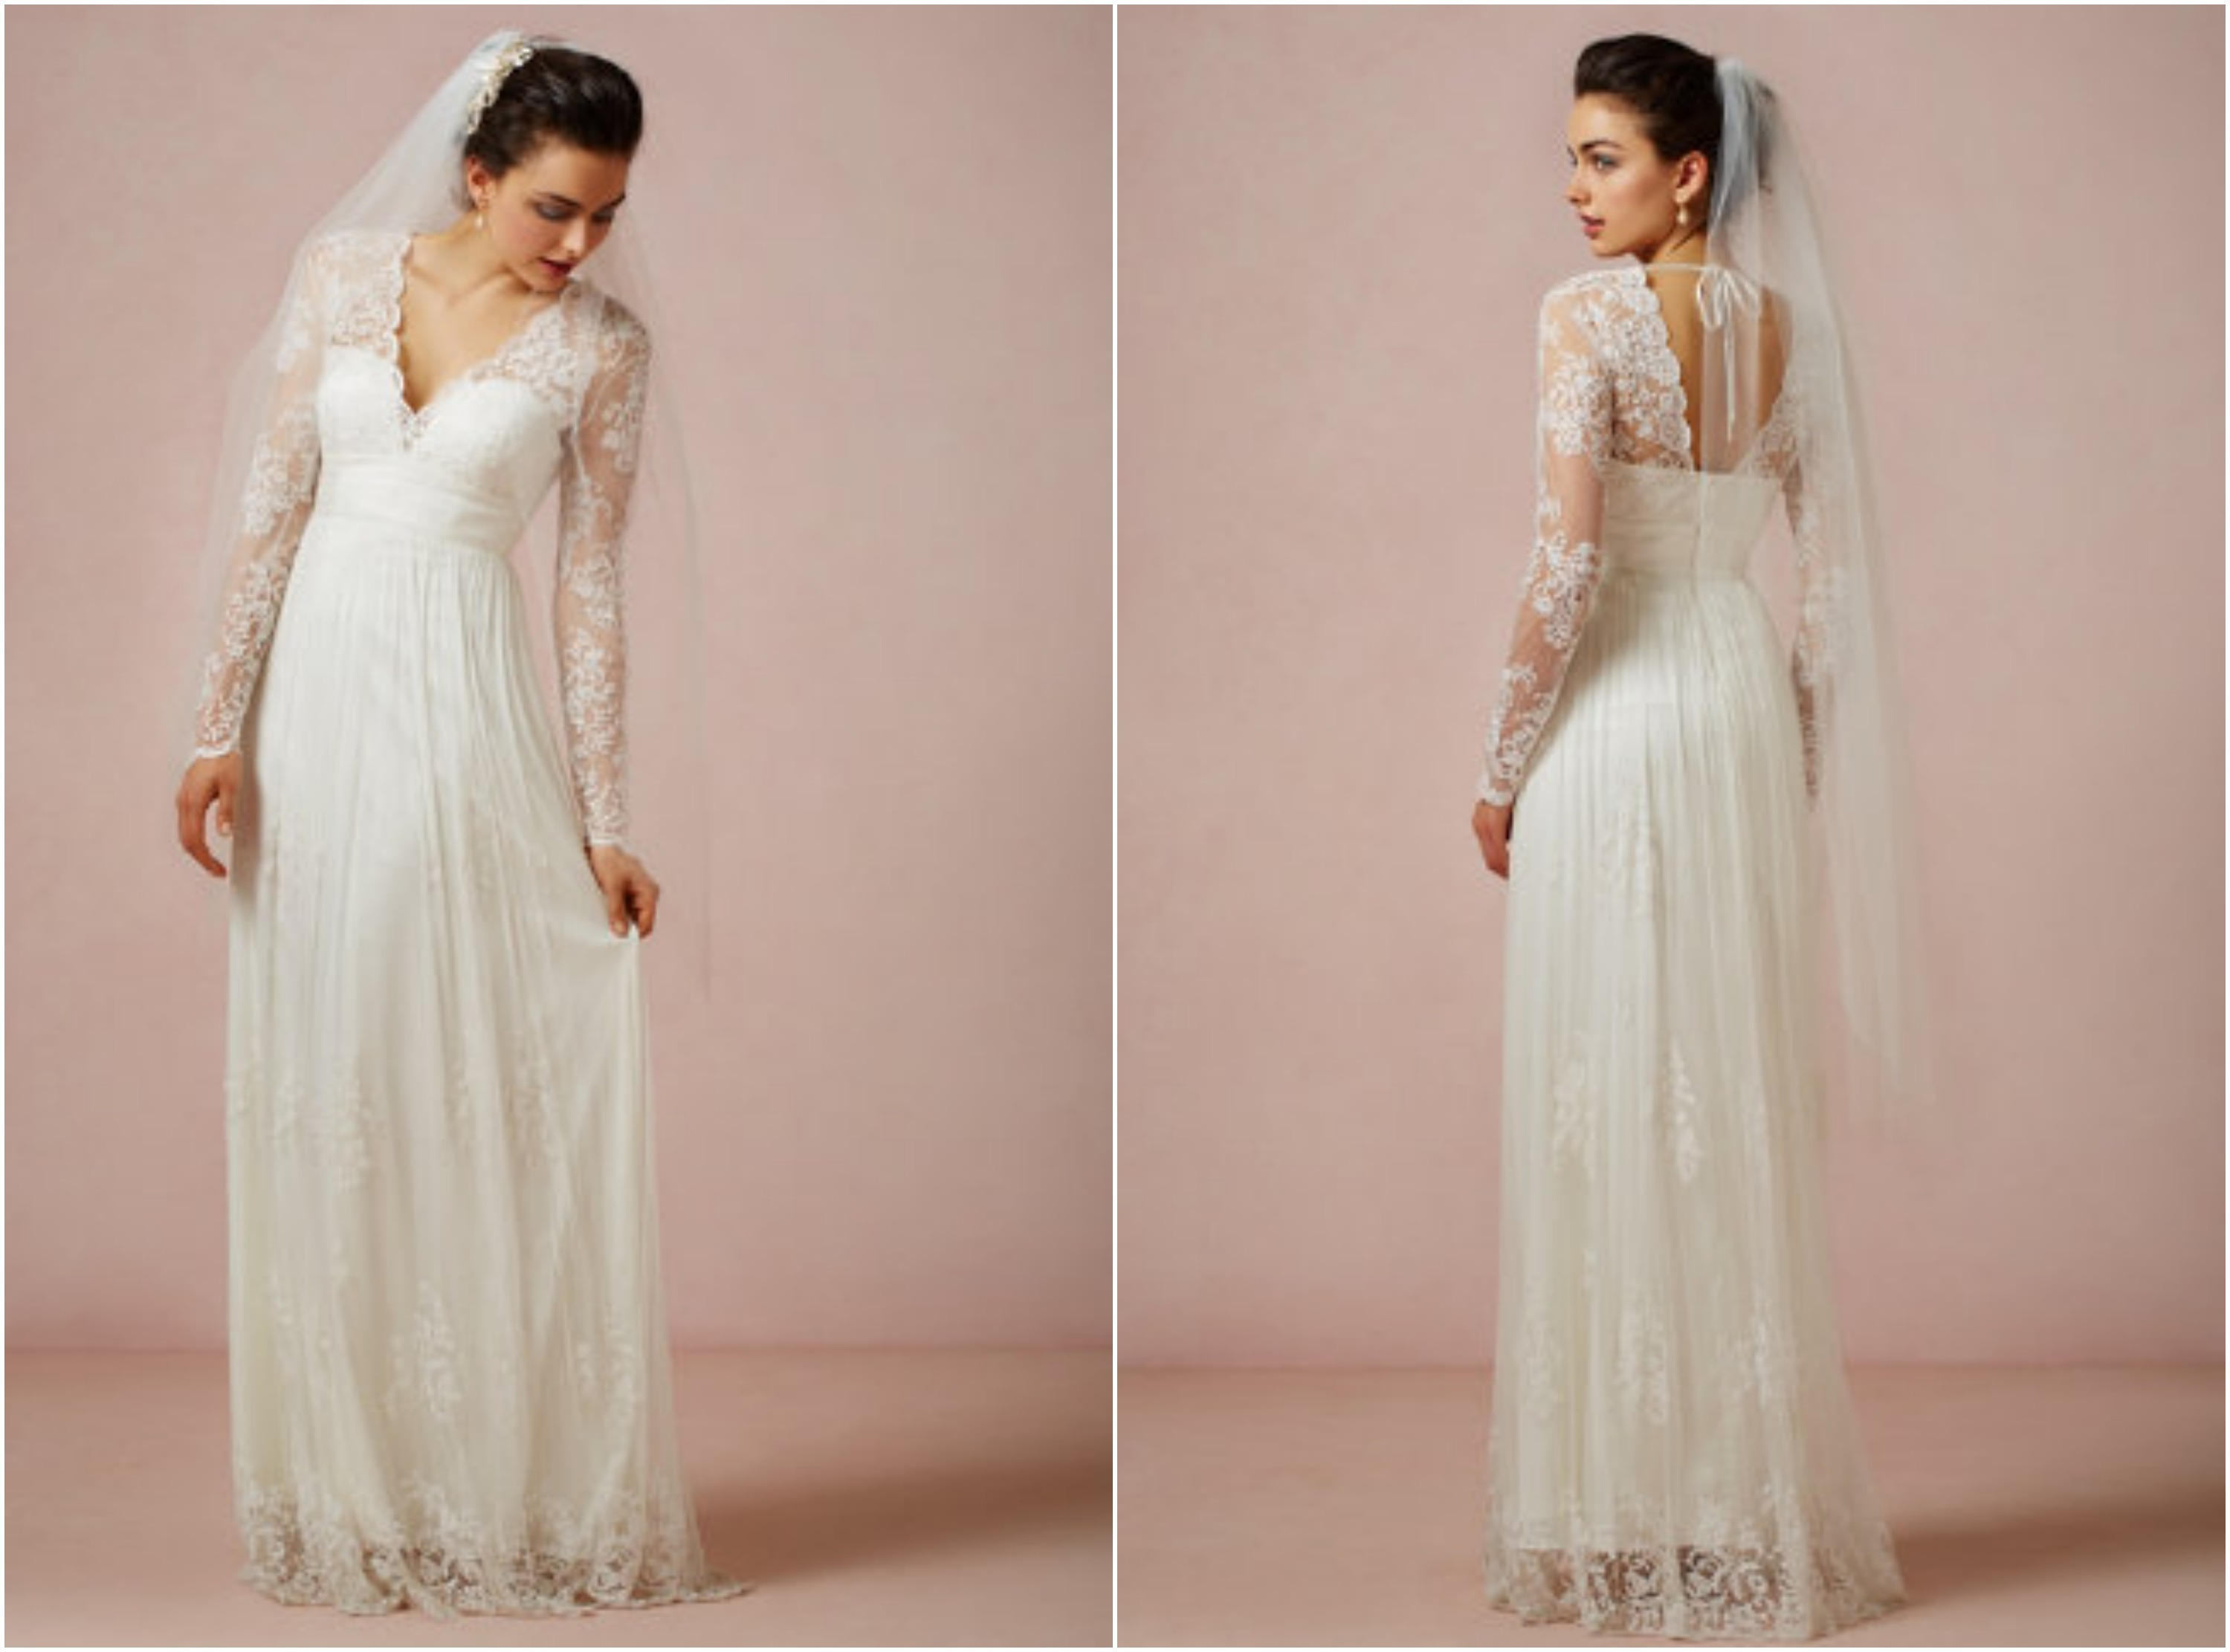 rustic wedding dresses with sleeves rustic wedding dresses Rustic Wedding Dresses With Sleeves 83